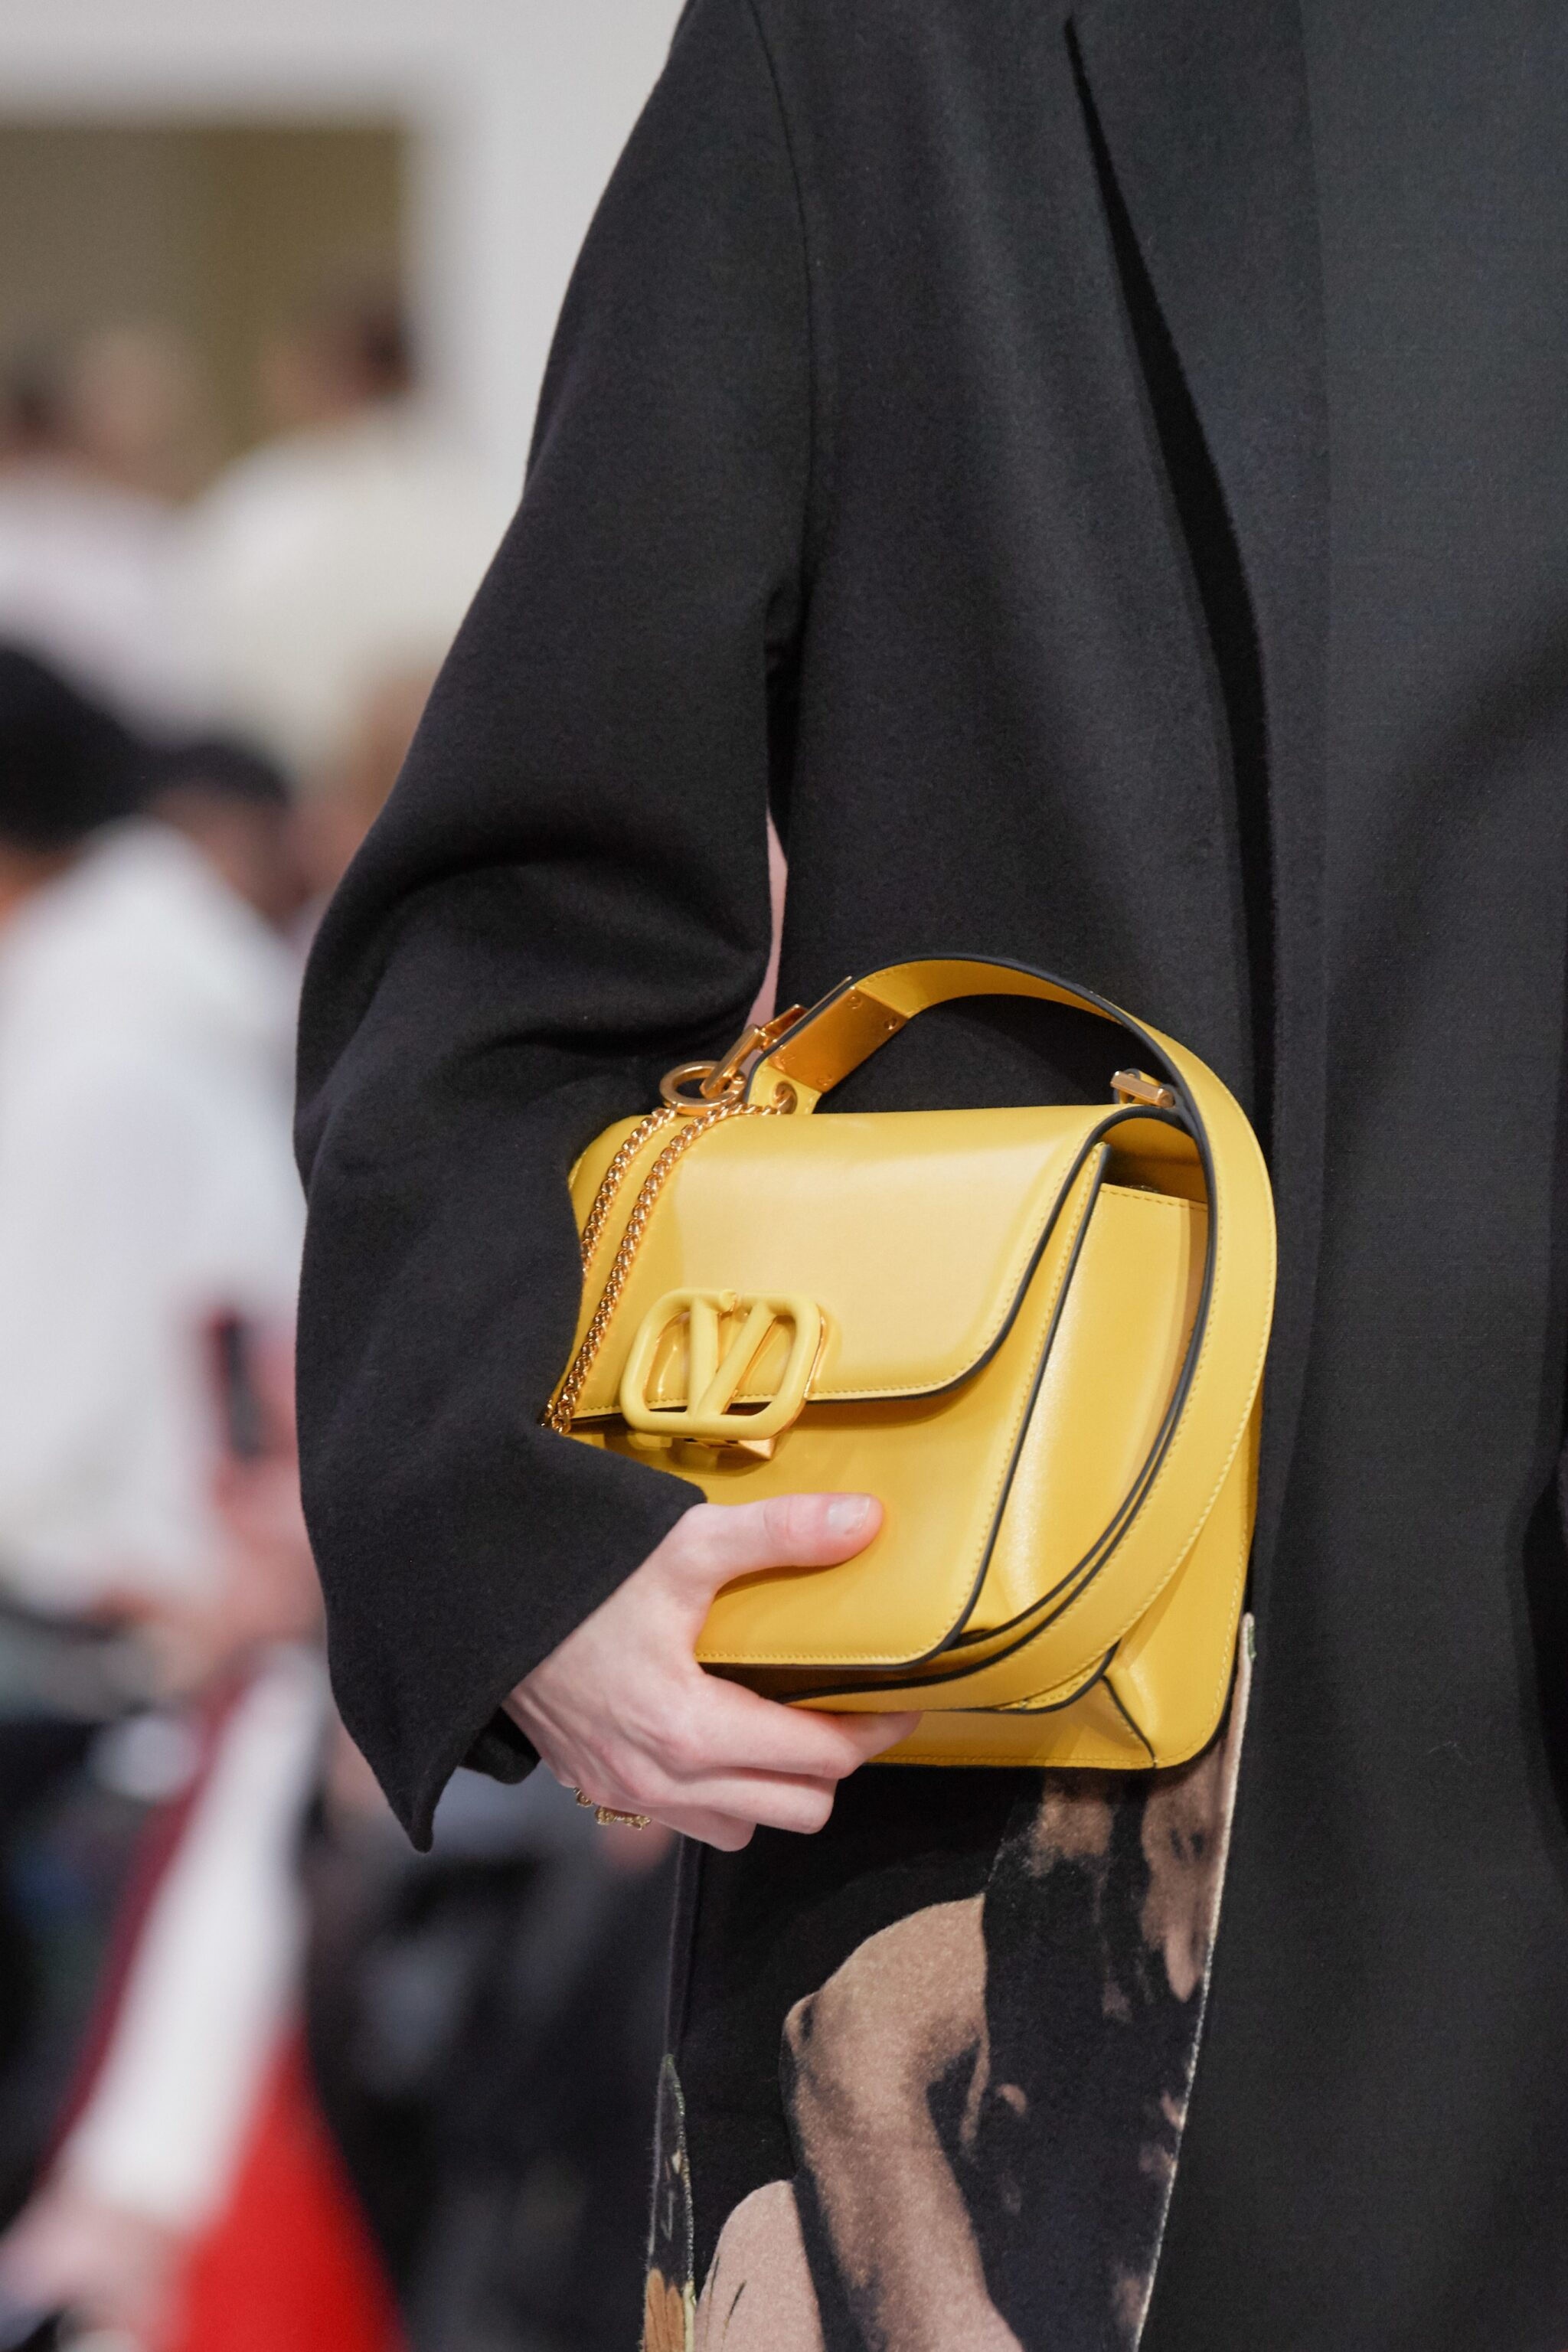 Valentino Fall Winter 2019 Runway Bag Collection Spotted